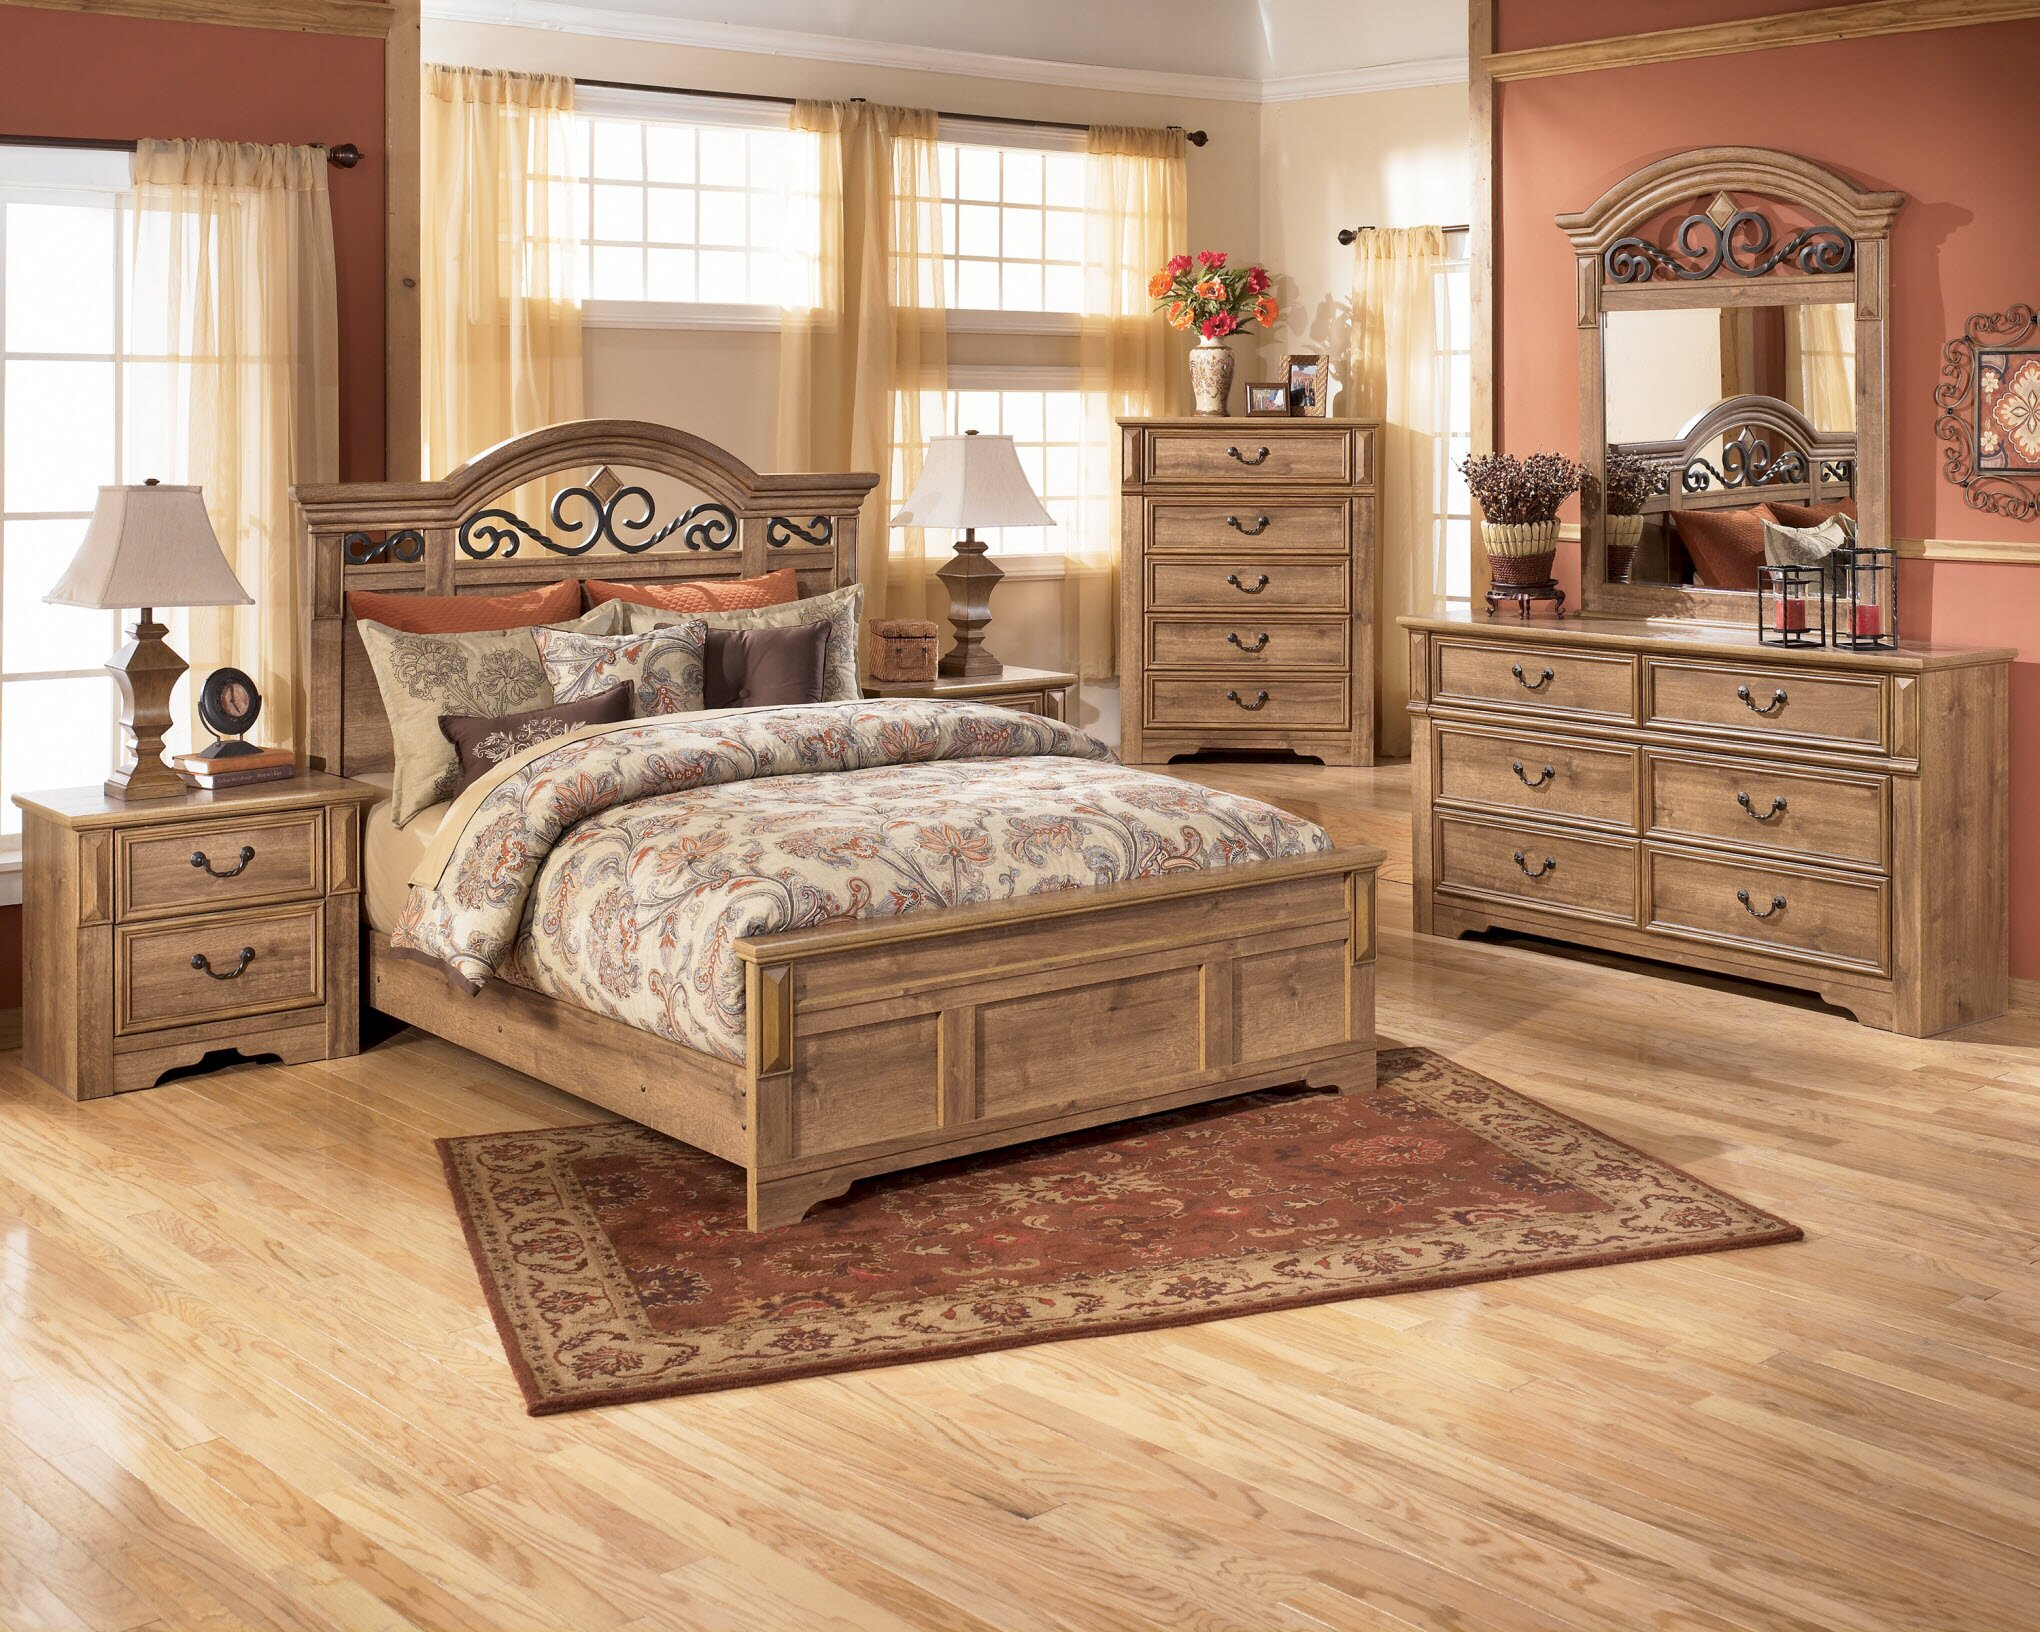 Bedroom craigslist bedroom sets for elegant bedroom for Elegant furniture